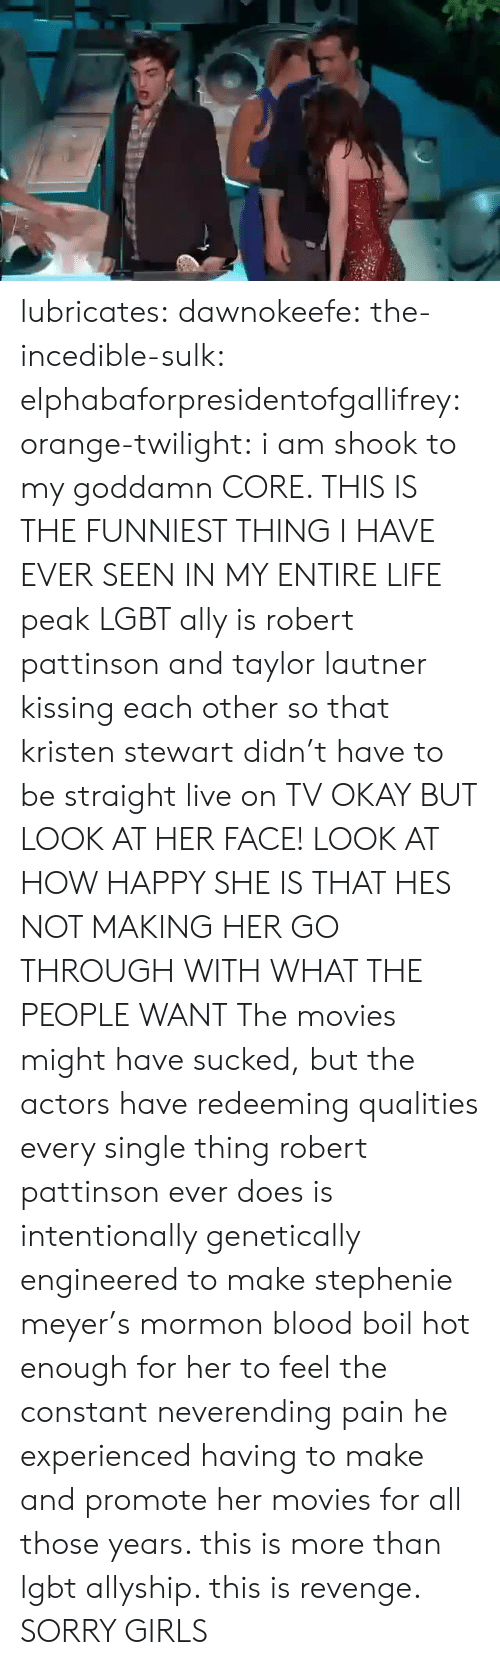 Stewart: lubricates: dawnokeefe:  the-incedible-sulk:  elphabaforpresidentofgallifrey:  orange-twilight: i am shook to my goddamn CORE. THIS IS THE FUNNIEST THING I HAVE EVER SEEN IN MY ENTIRE LIFE peak LGBT ally is robert pattinson and taylor lautner kissing each other so that kristen stewart didn't have to be straight live on TV   OKAY BUT LOOK AT HER FACE! LOOK AT HOW HAPPY SHE IS THAT HES NOT MAKING HER GO THROUGH WITH WHAT THE PEOPLE WANT  The movies might have sucked, but the actors have redeeming qualities   every single thing robert pattinson ever does is intentionally genetically engineered to make stephenie meyer's mormon blood boil hot enough for her to feel the constant neverending pain he experienced having to make and promote her movies for all those years. this is more than lgbt allyship. this is revenge.  SORRY GIRLS